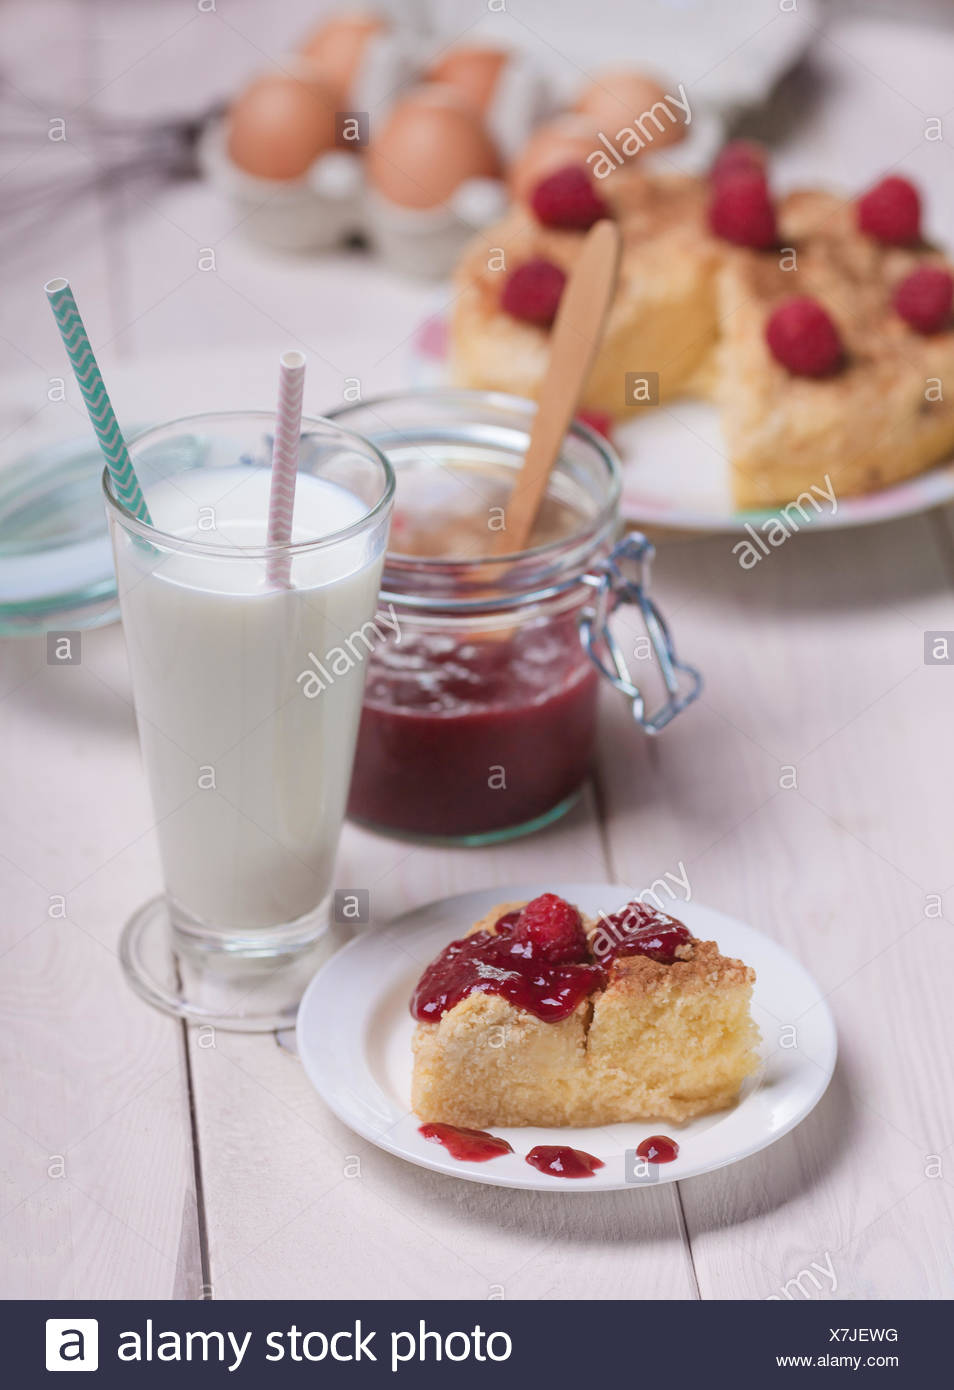 Sweet food with milk on rustic wooden planks. Debica, Poland - Stock Image